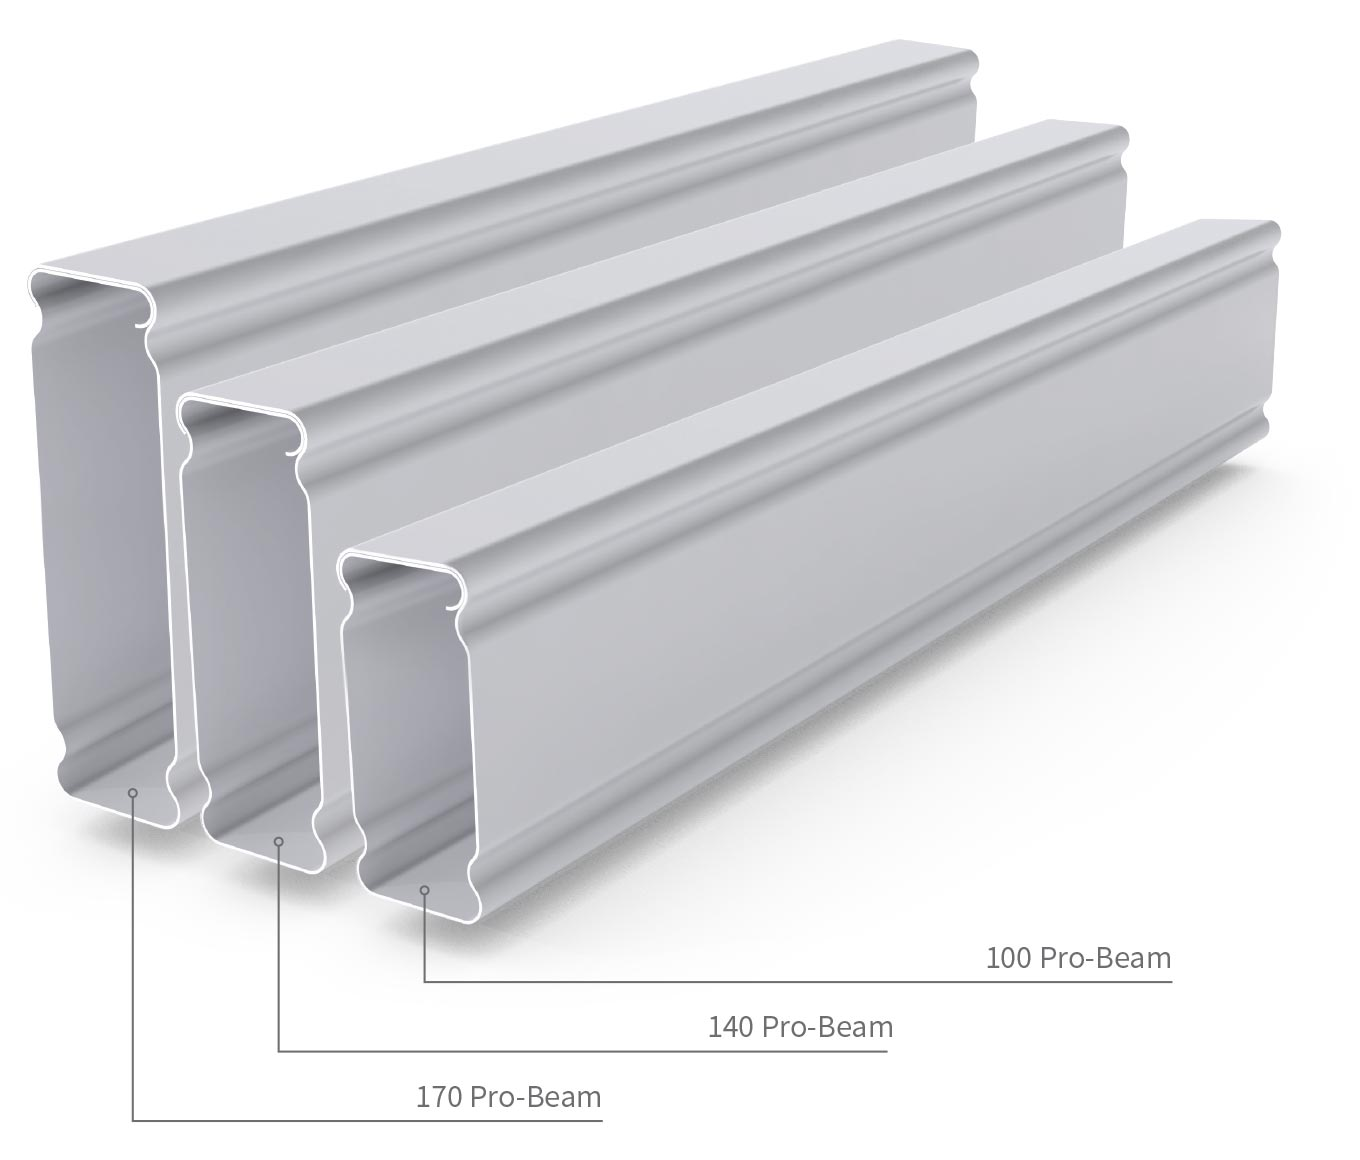 Steel Framing Pro Beam Profile